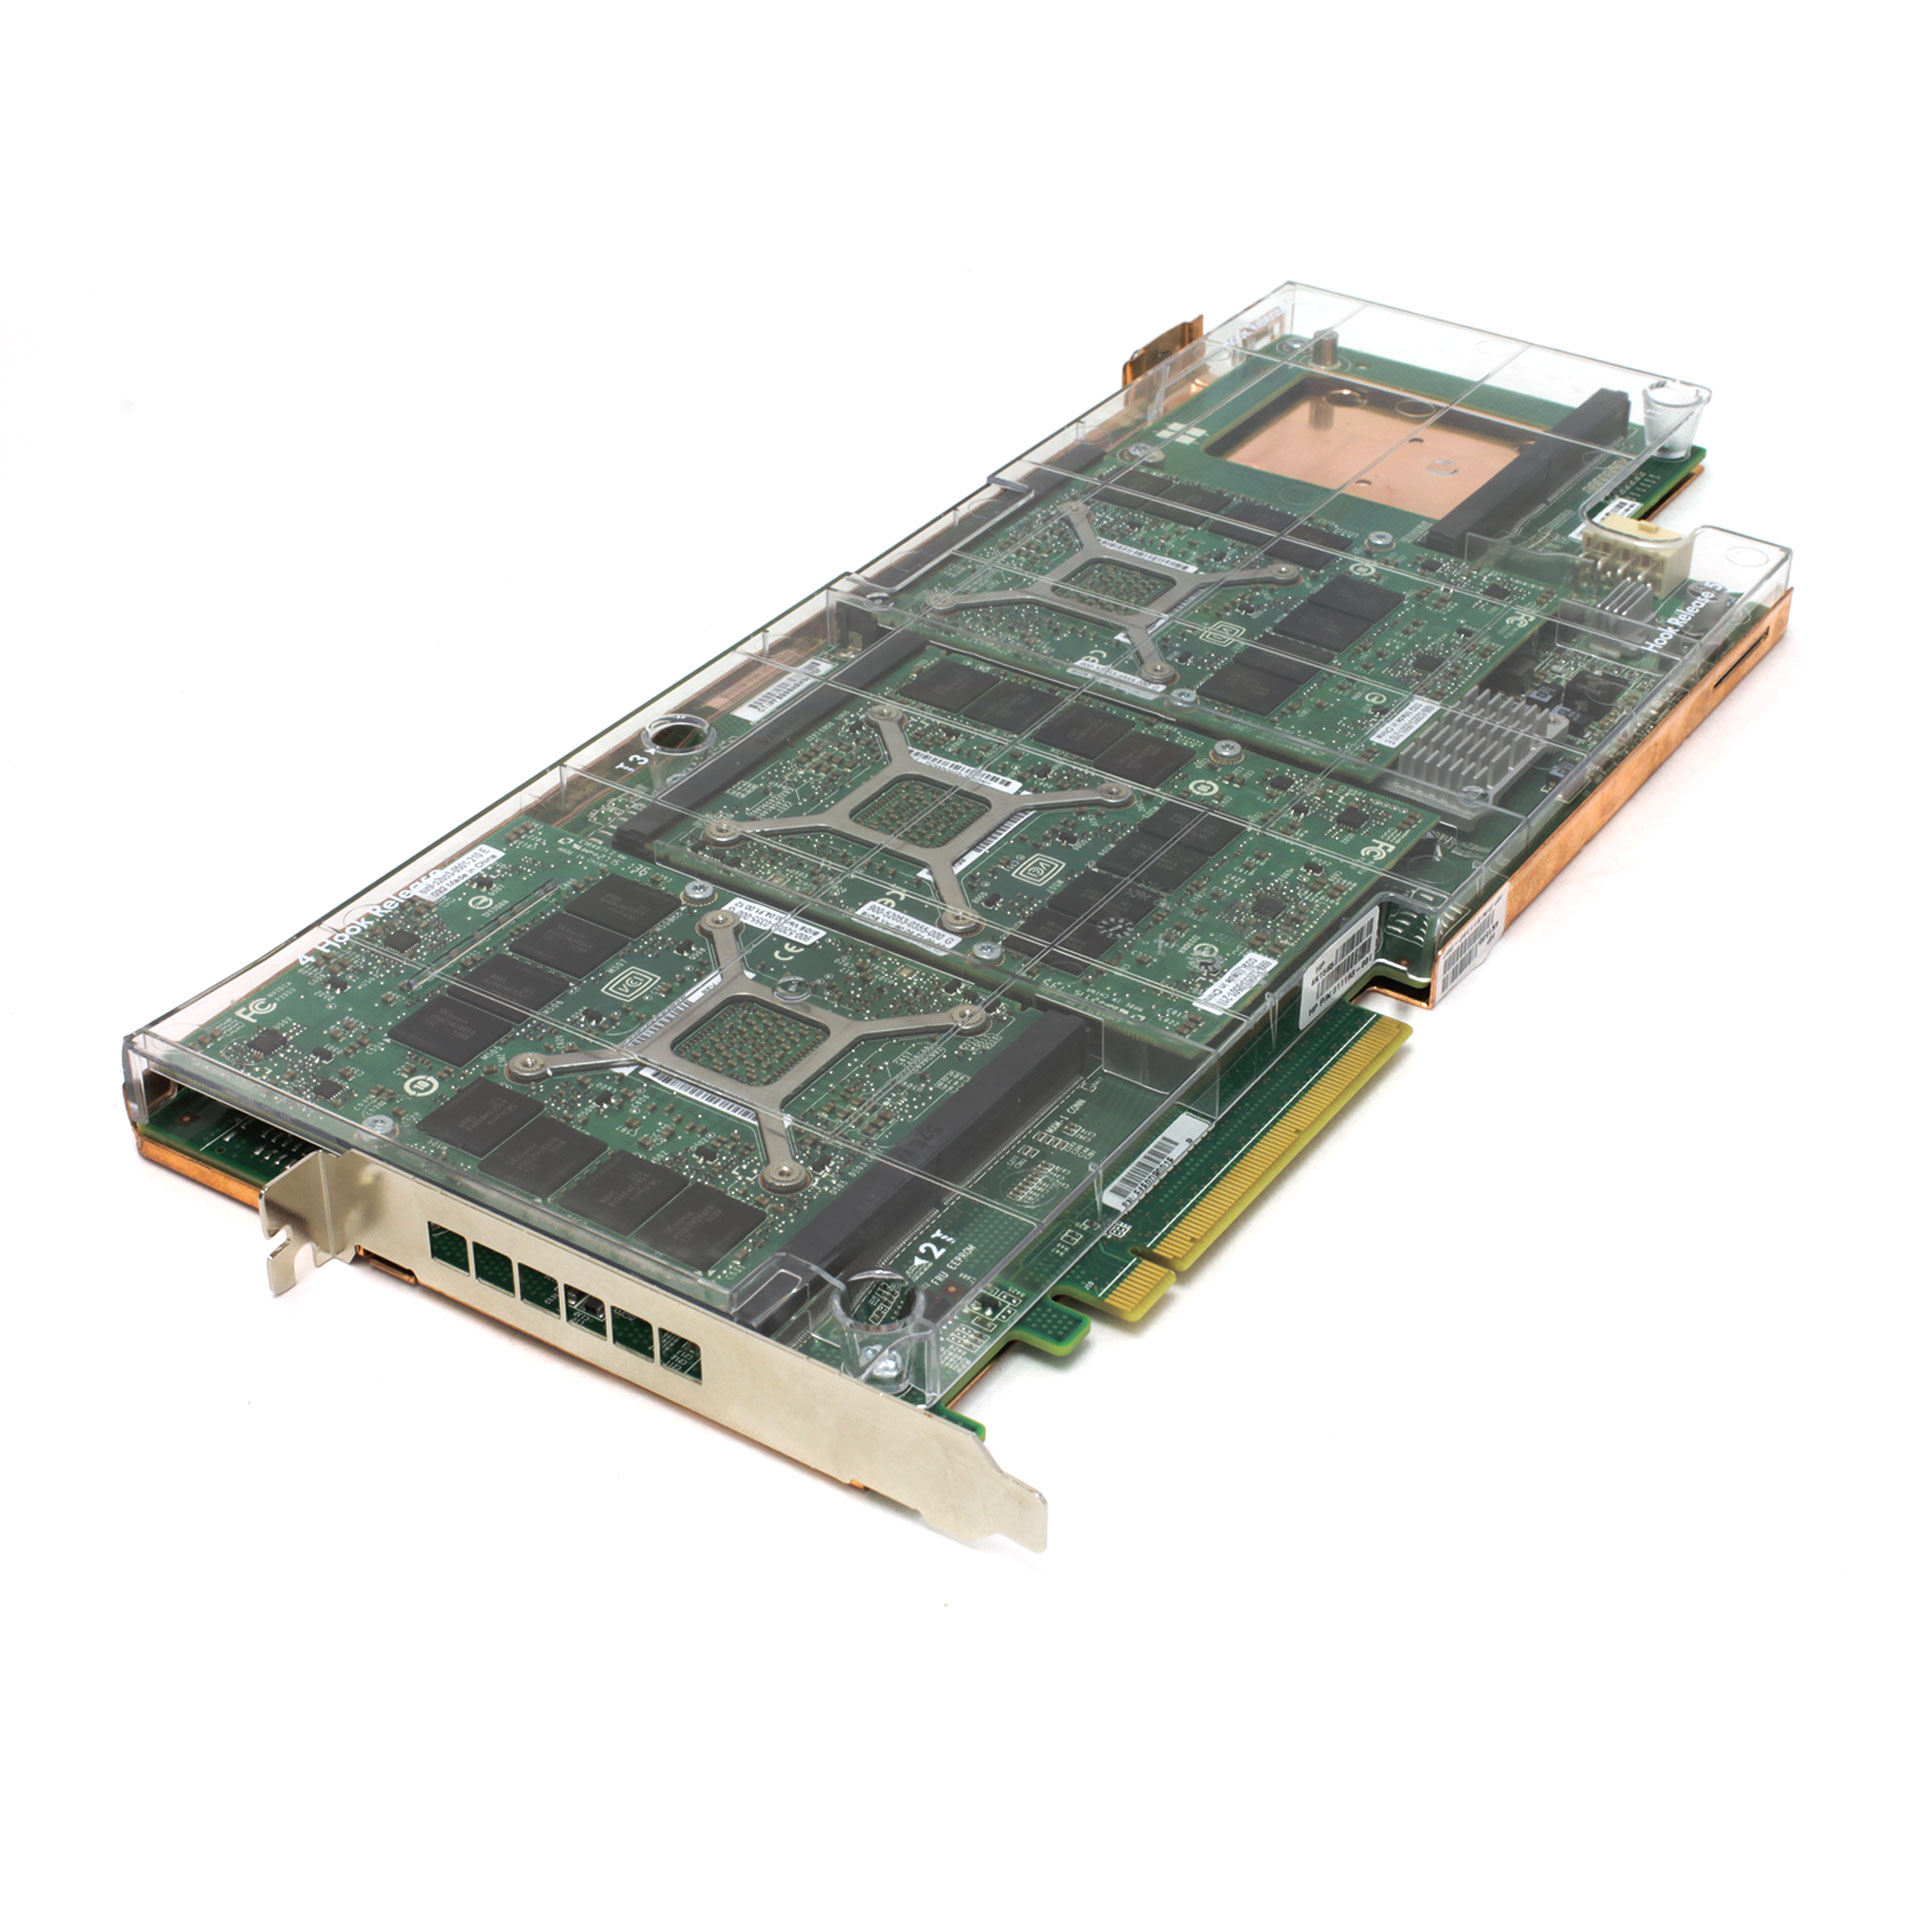 3xHP NVIDIA QUADRO K3100M 4GB GDDR5 KEPLER VIDEO CARD 744354-001